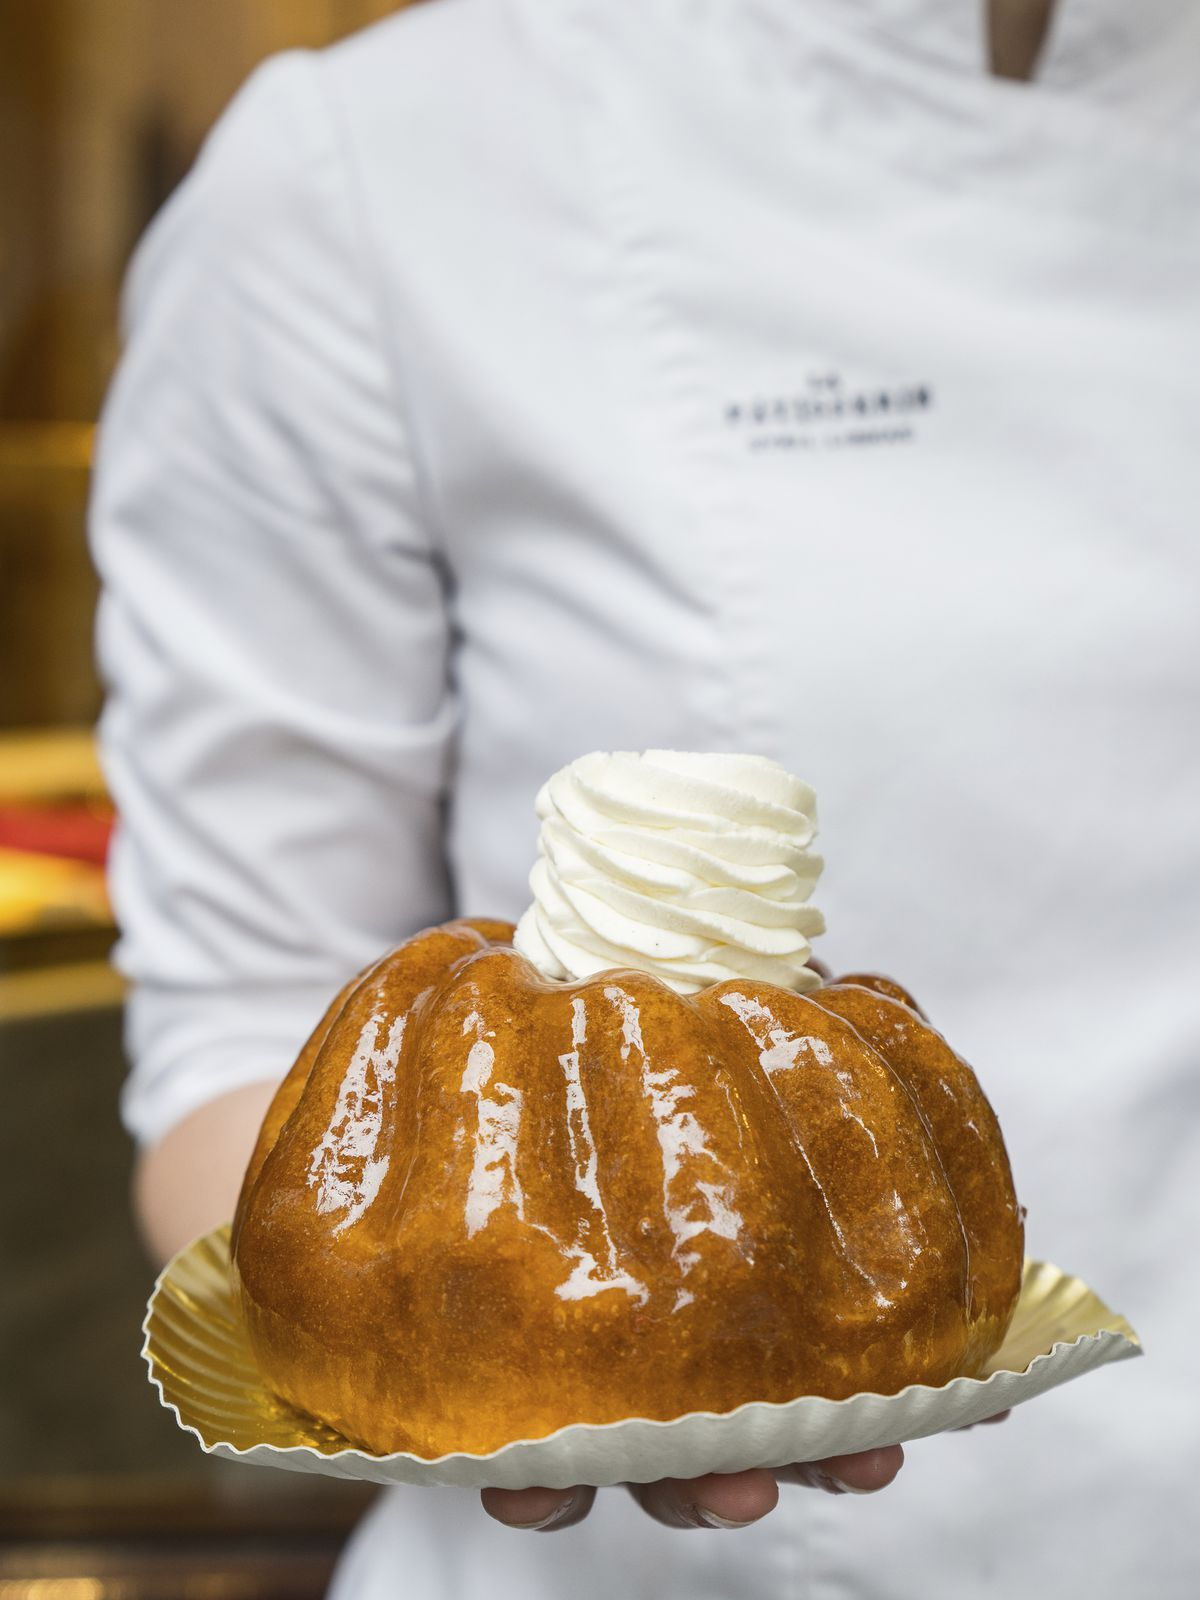 That classic French dessert baba au rhum is making a comeback